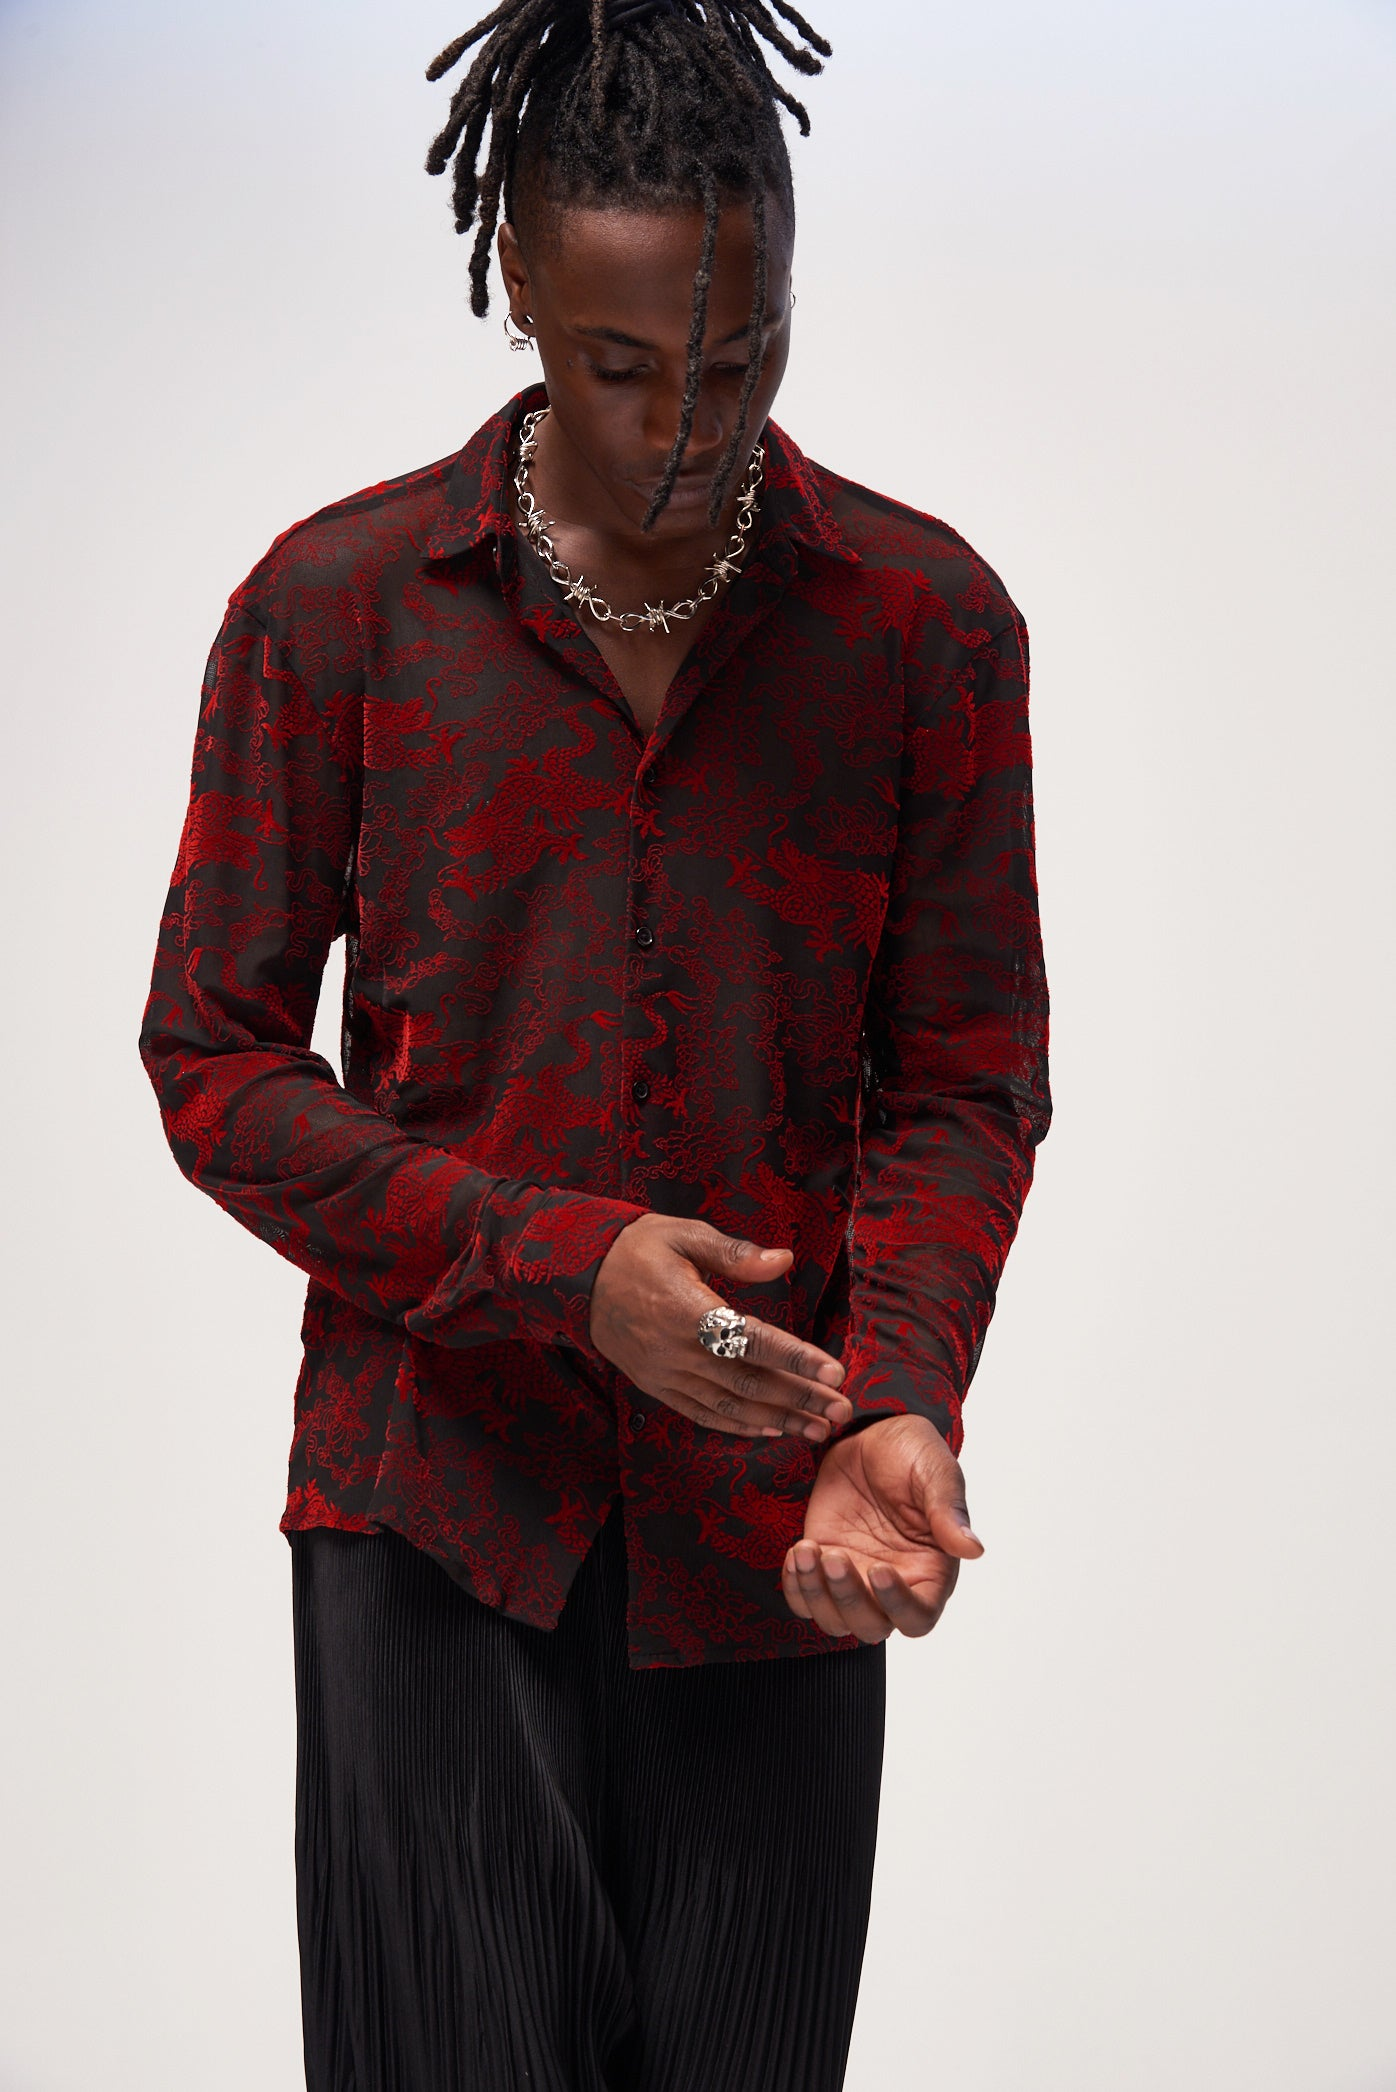 Black Mesh Shirt With Red Flocked Dragon